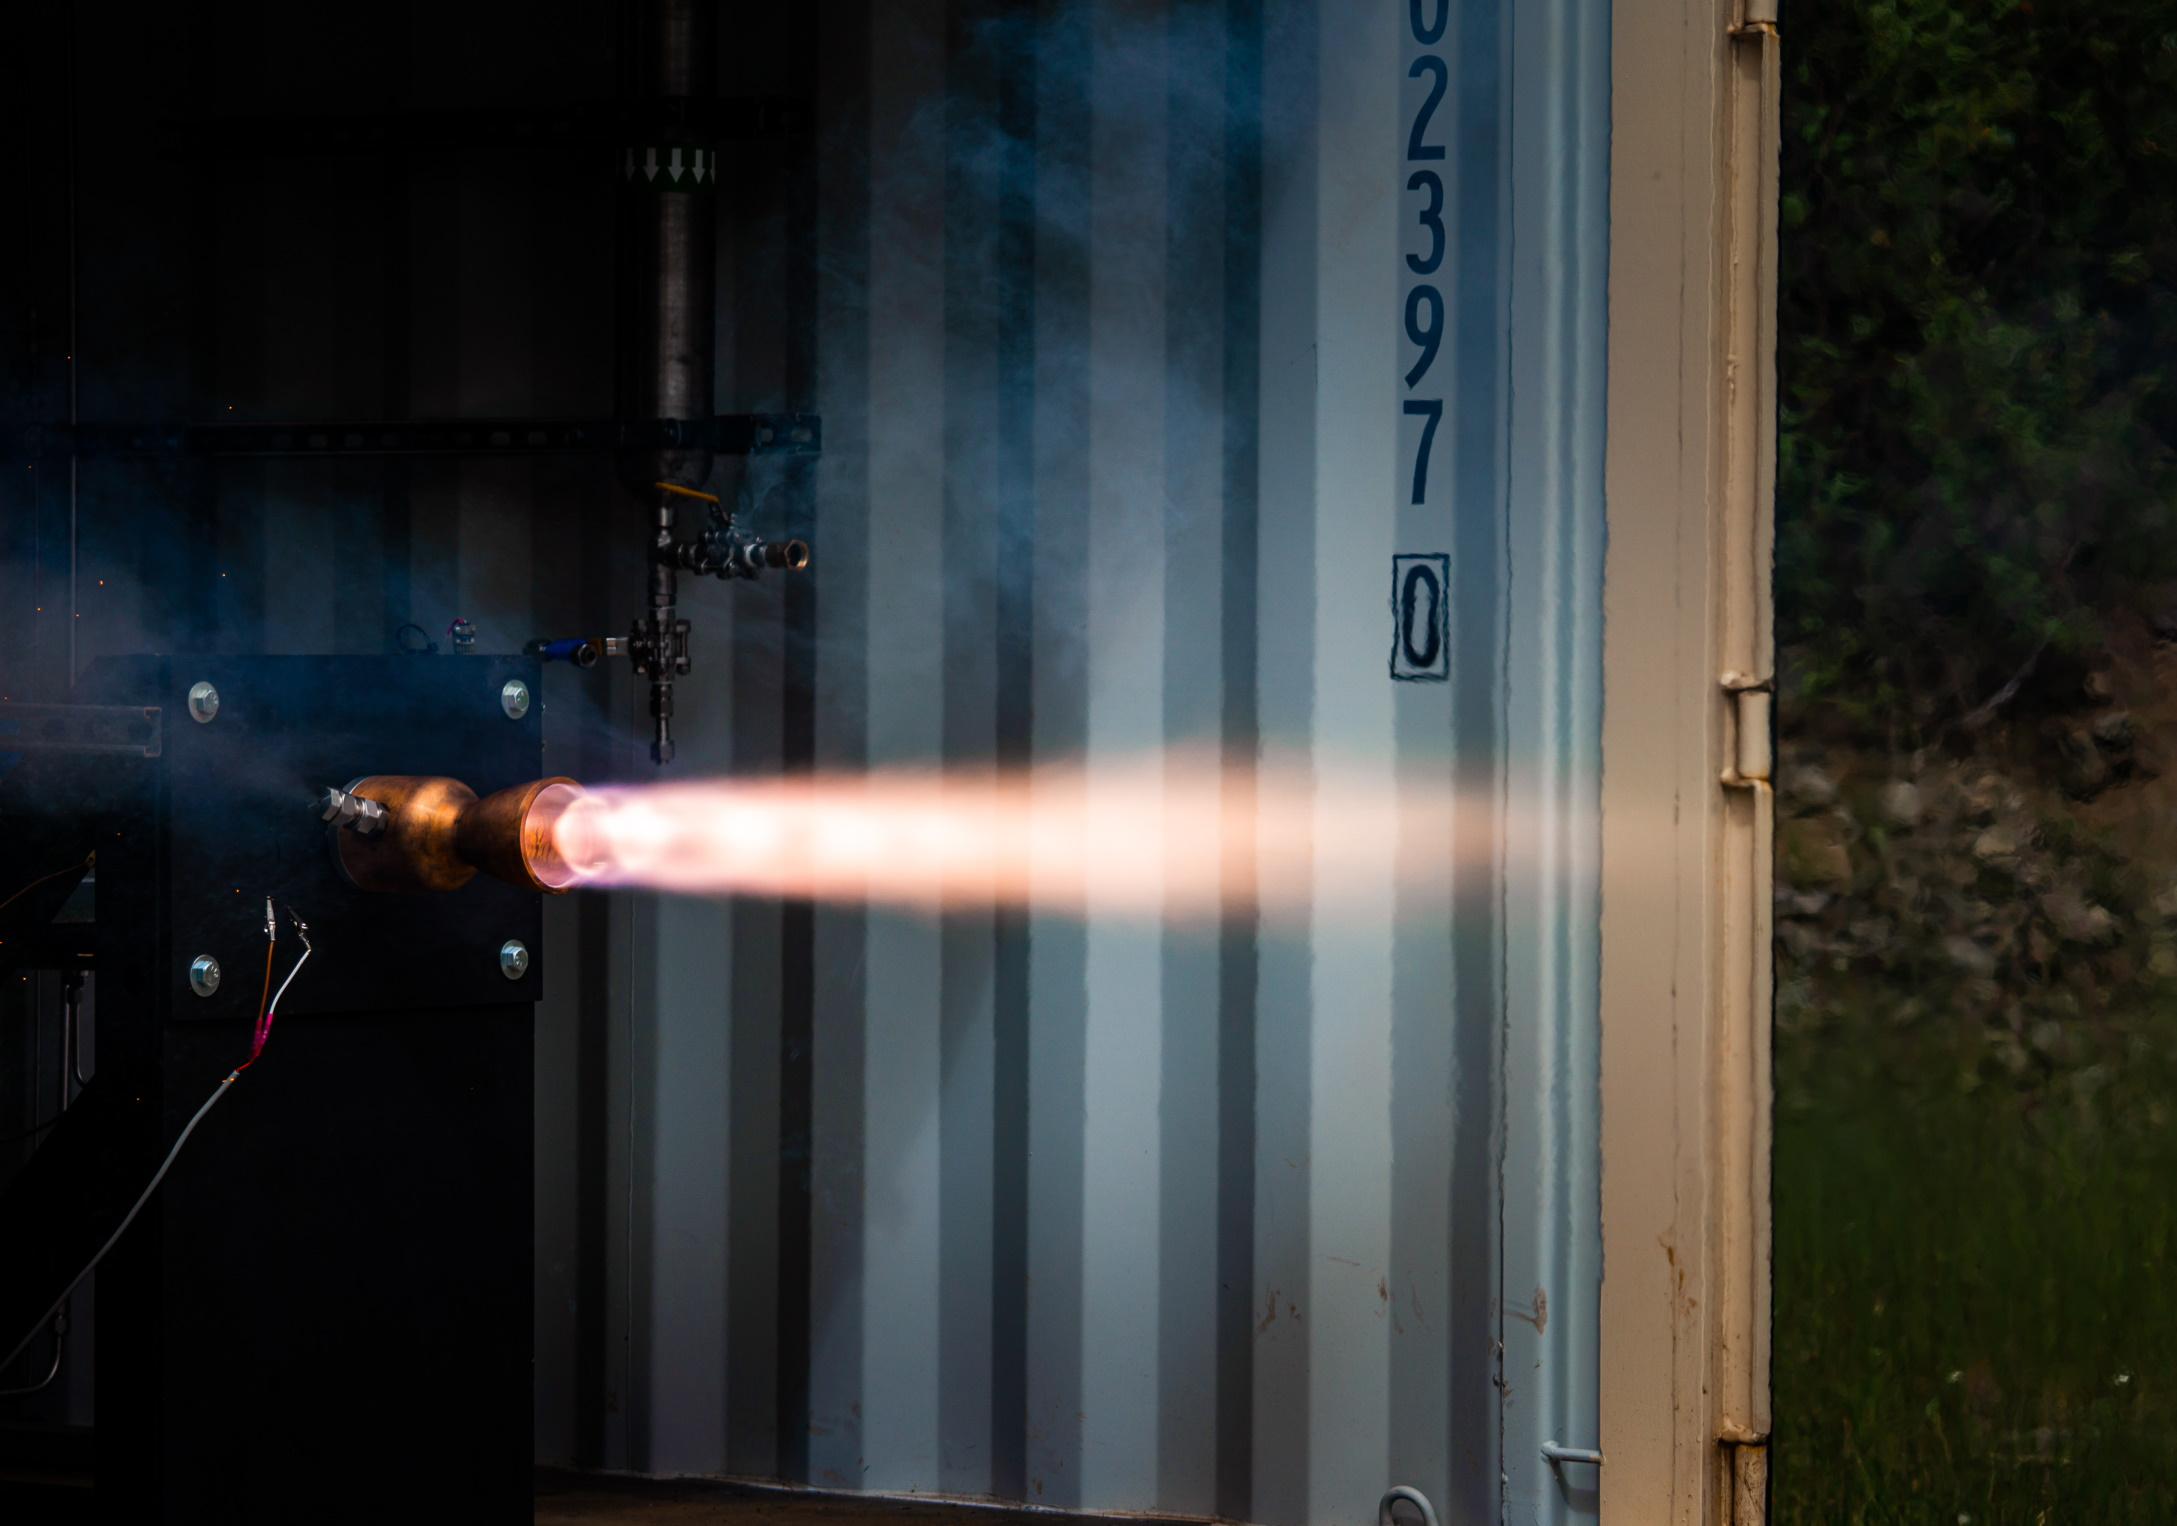 A rocket does a test fire in an industrial environment.